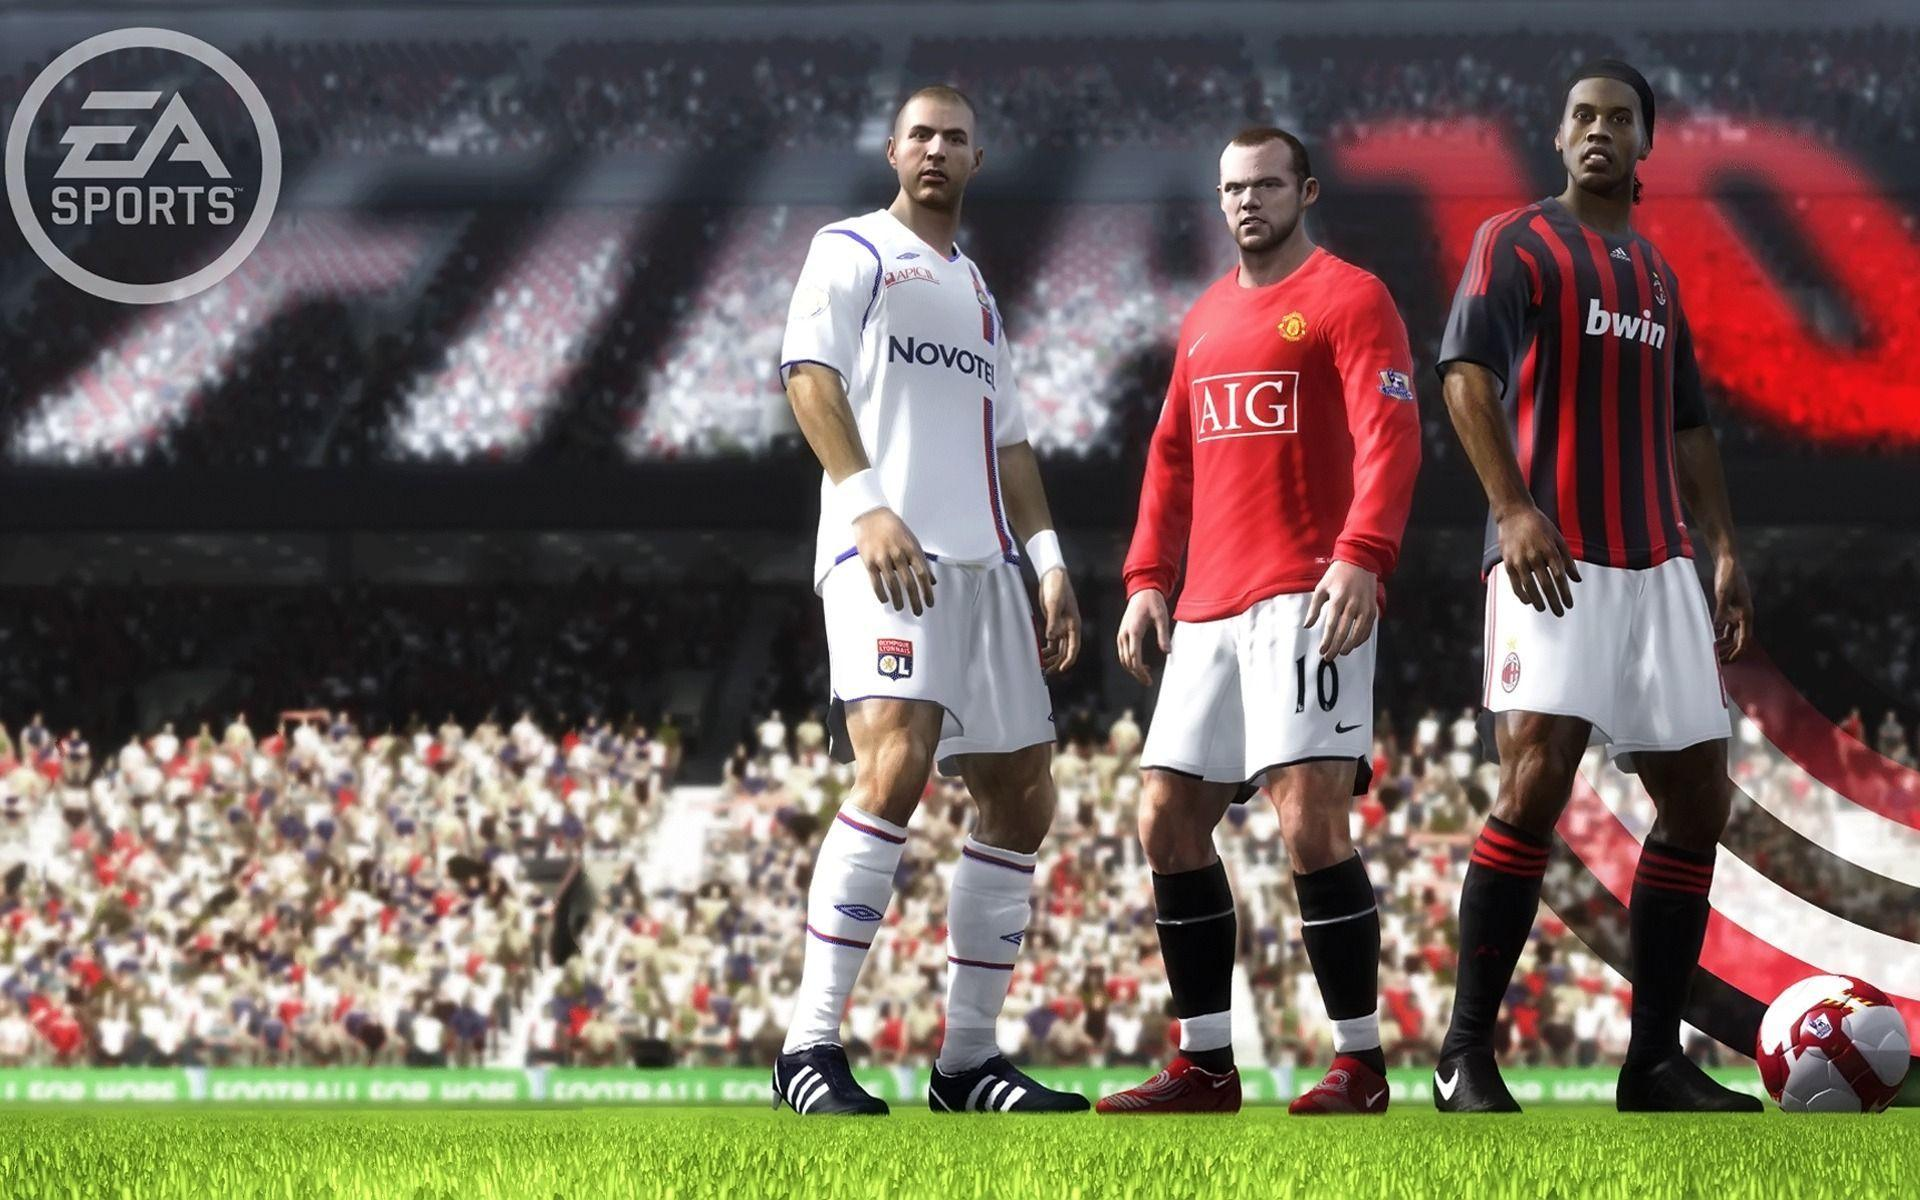 Fifa Wallpapers Hd Wallpapers Pulse